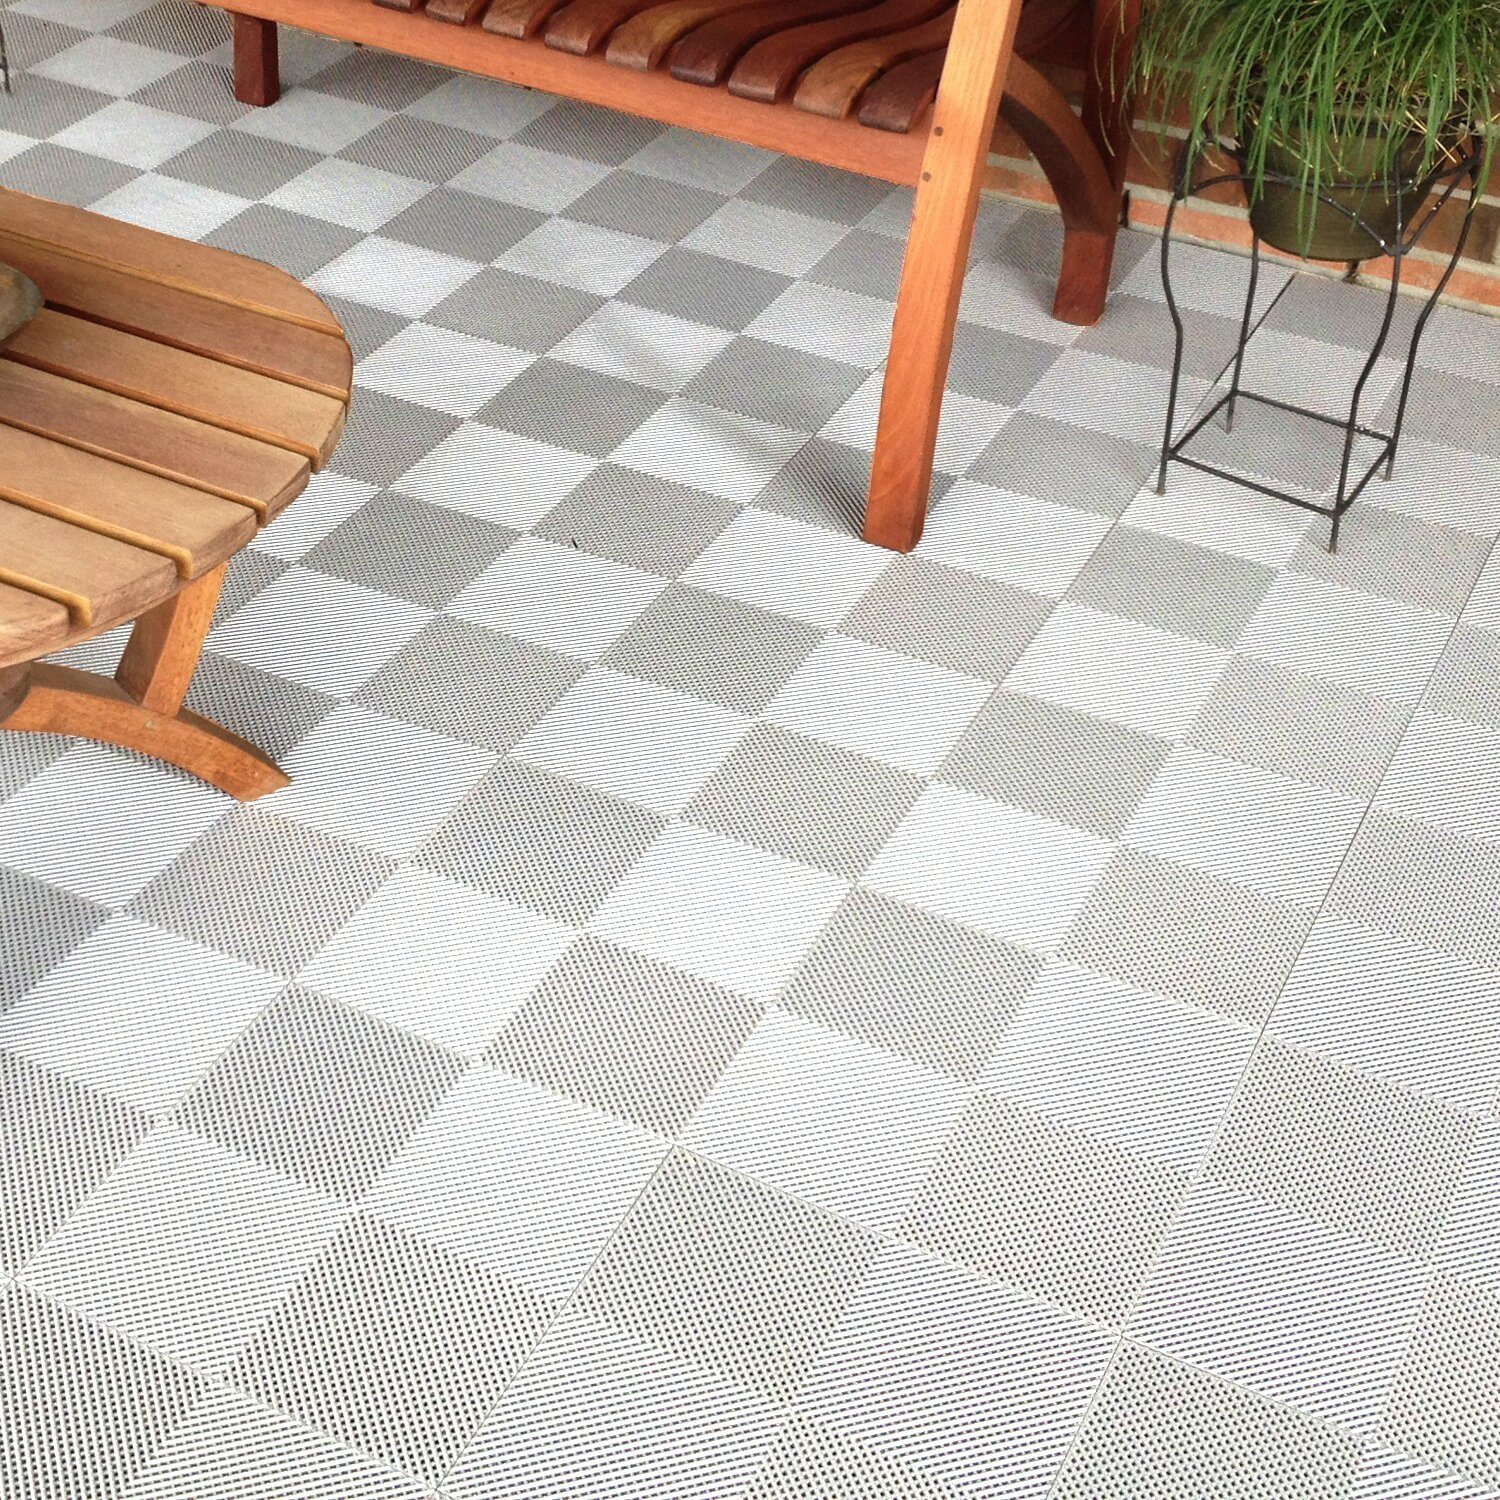 Blocktile 12 X 12 Deck And Patio Flooring Tile In White